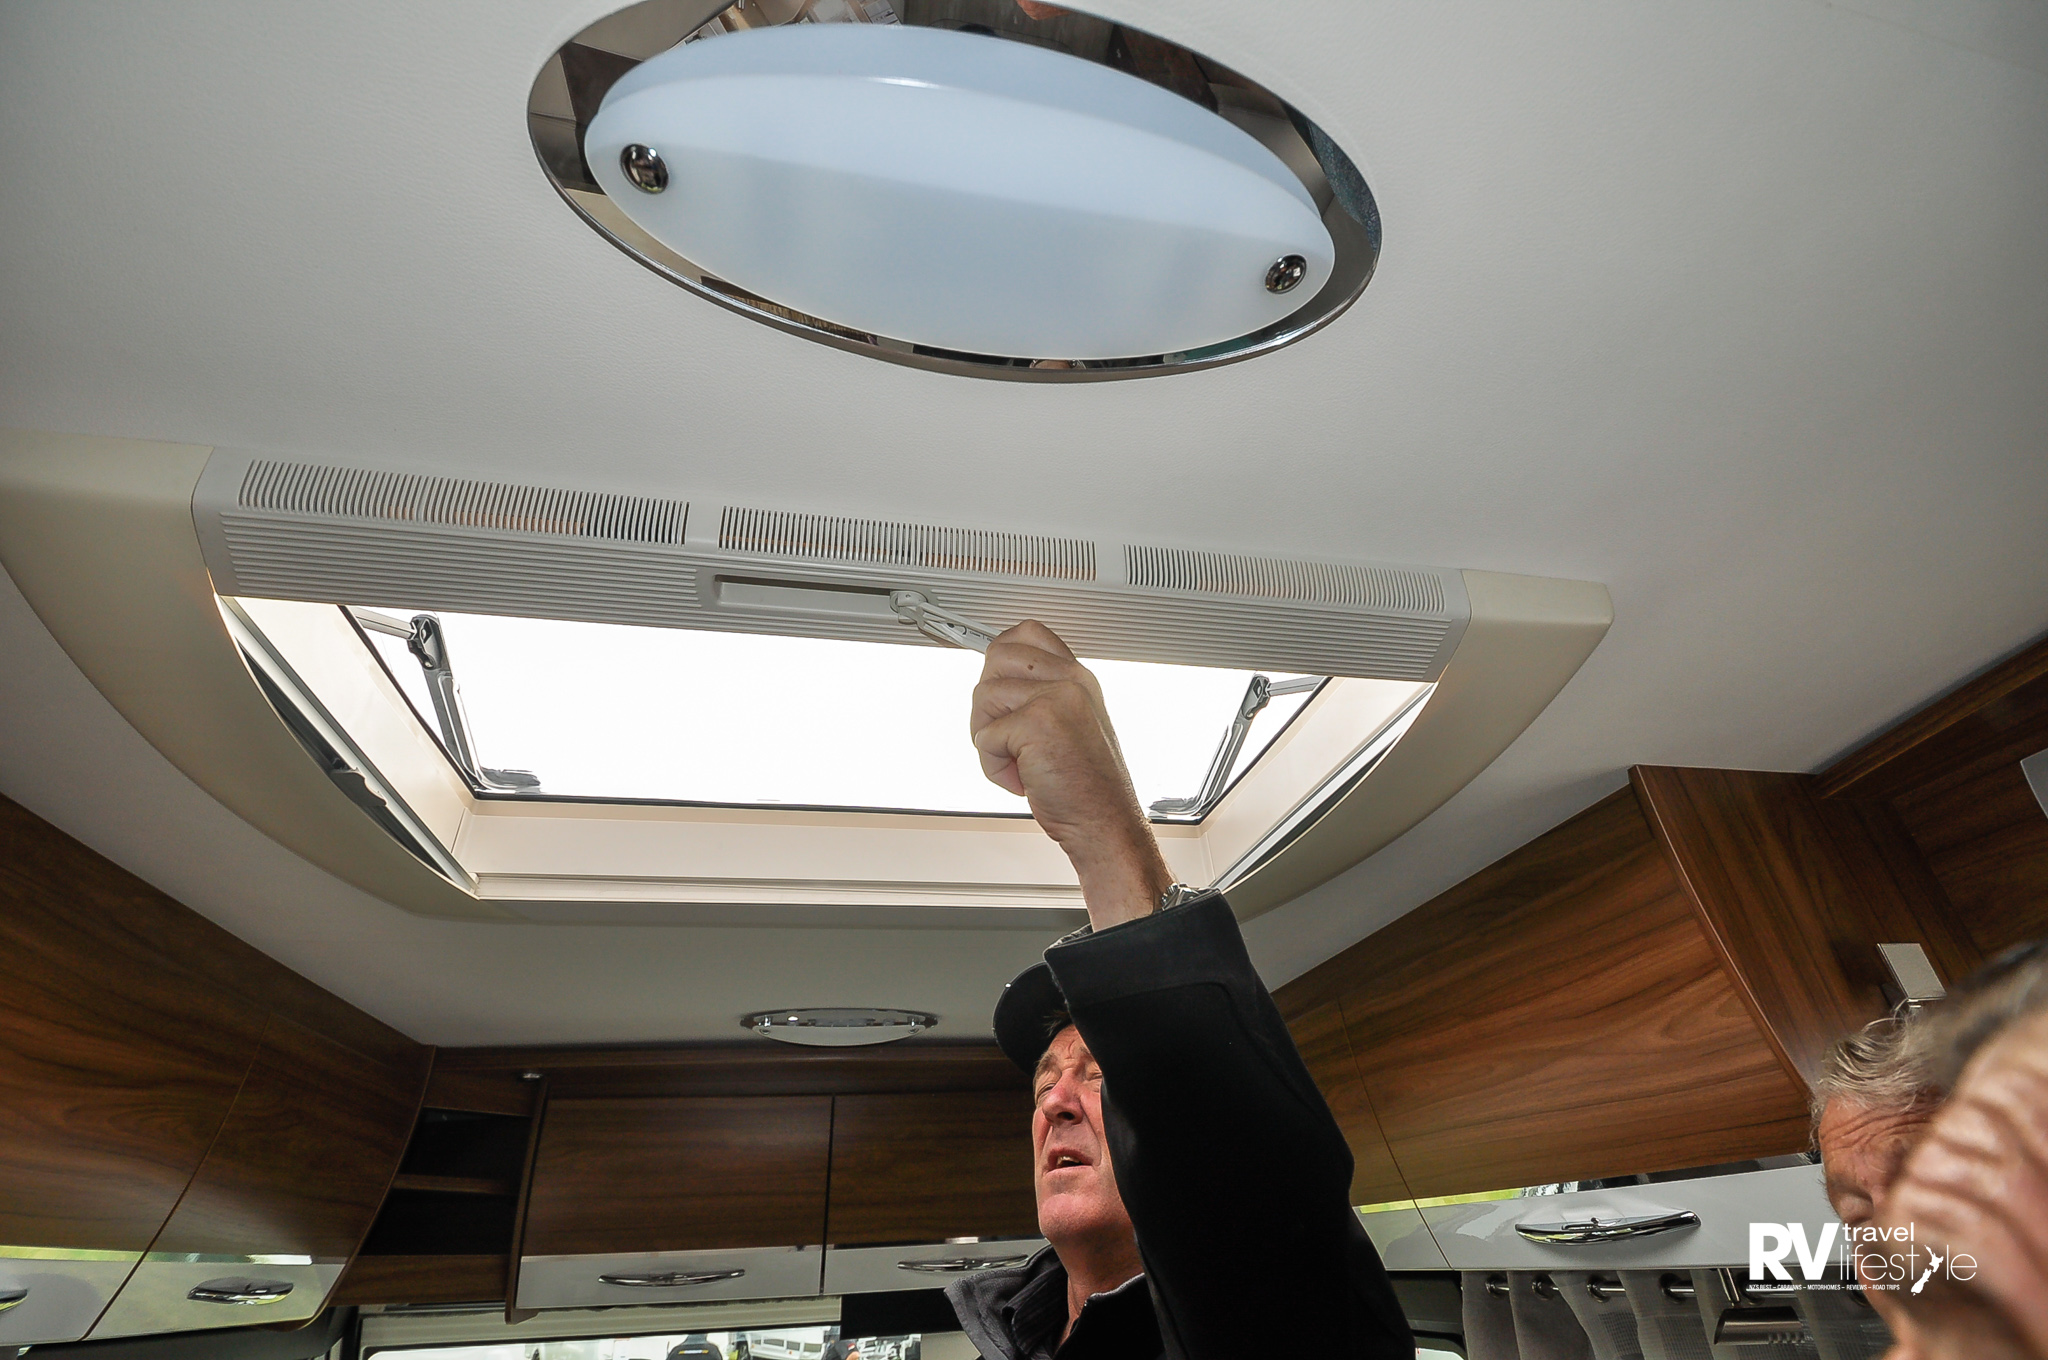 The 820mm x 520 panoramic sunroof opens with a winder and is on stays, what a great idea instead of push open and pull close – no blowing up in the wind with this model